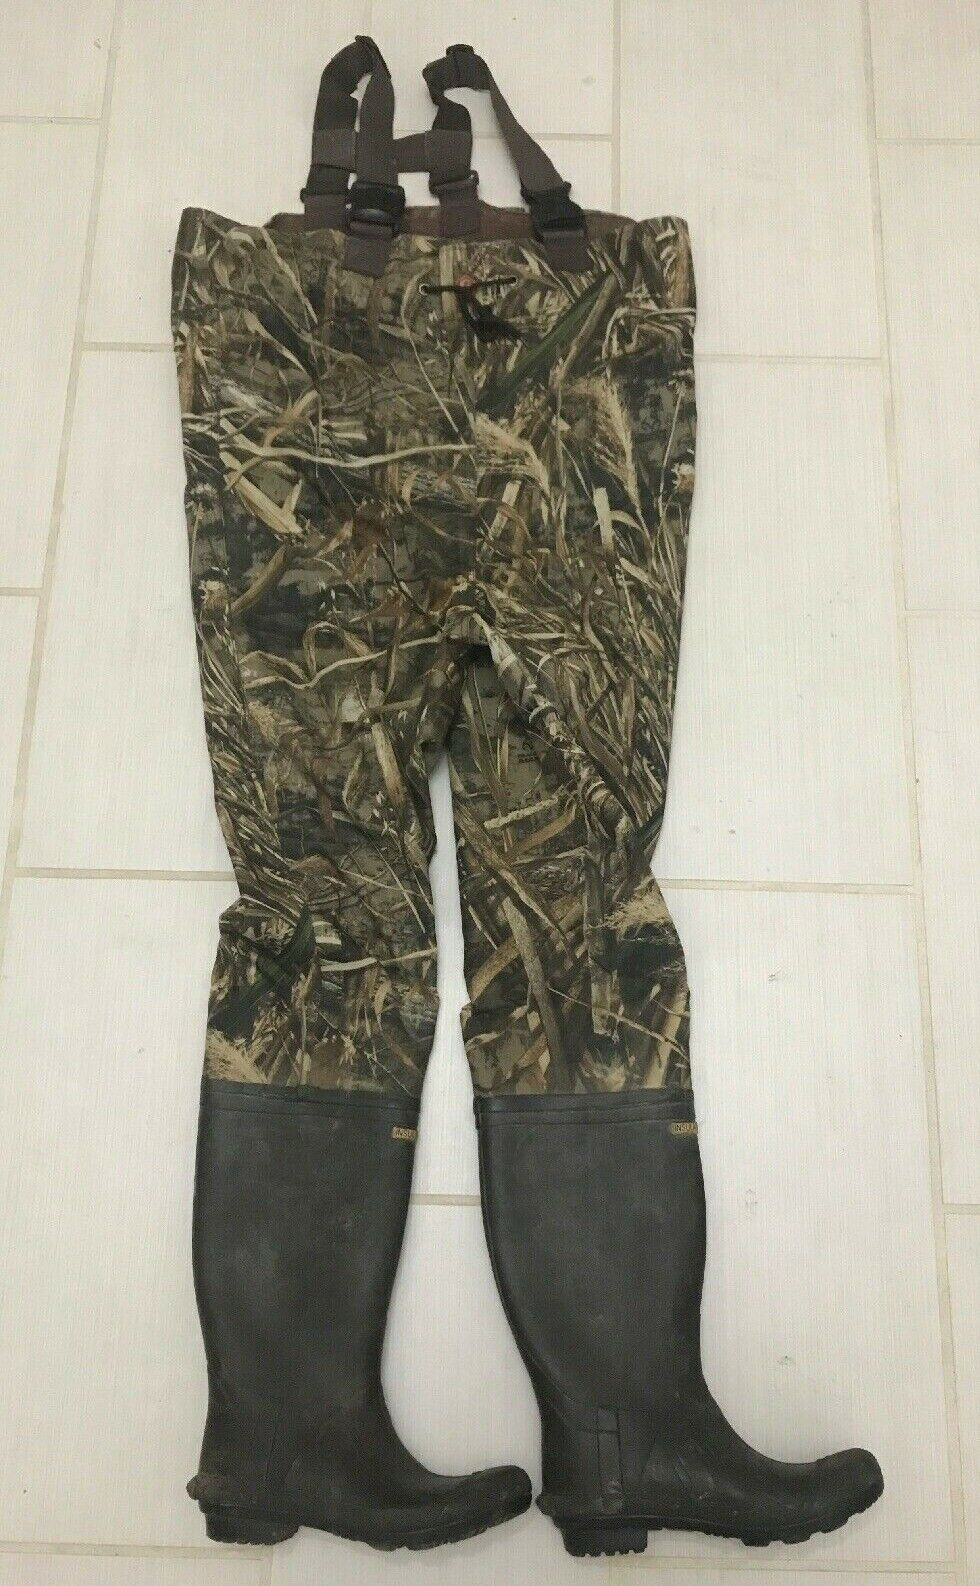 Game Winner camouflage realtree  max 5 2-ply insulated boot-foot  Wader, size 9  outlet store